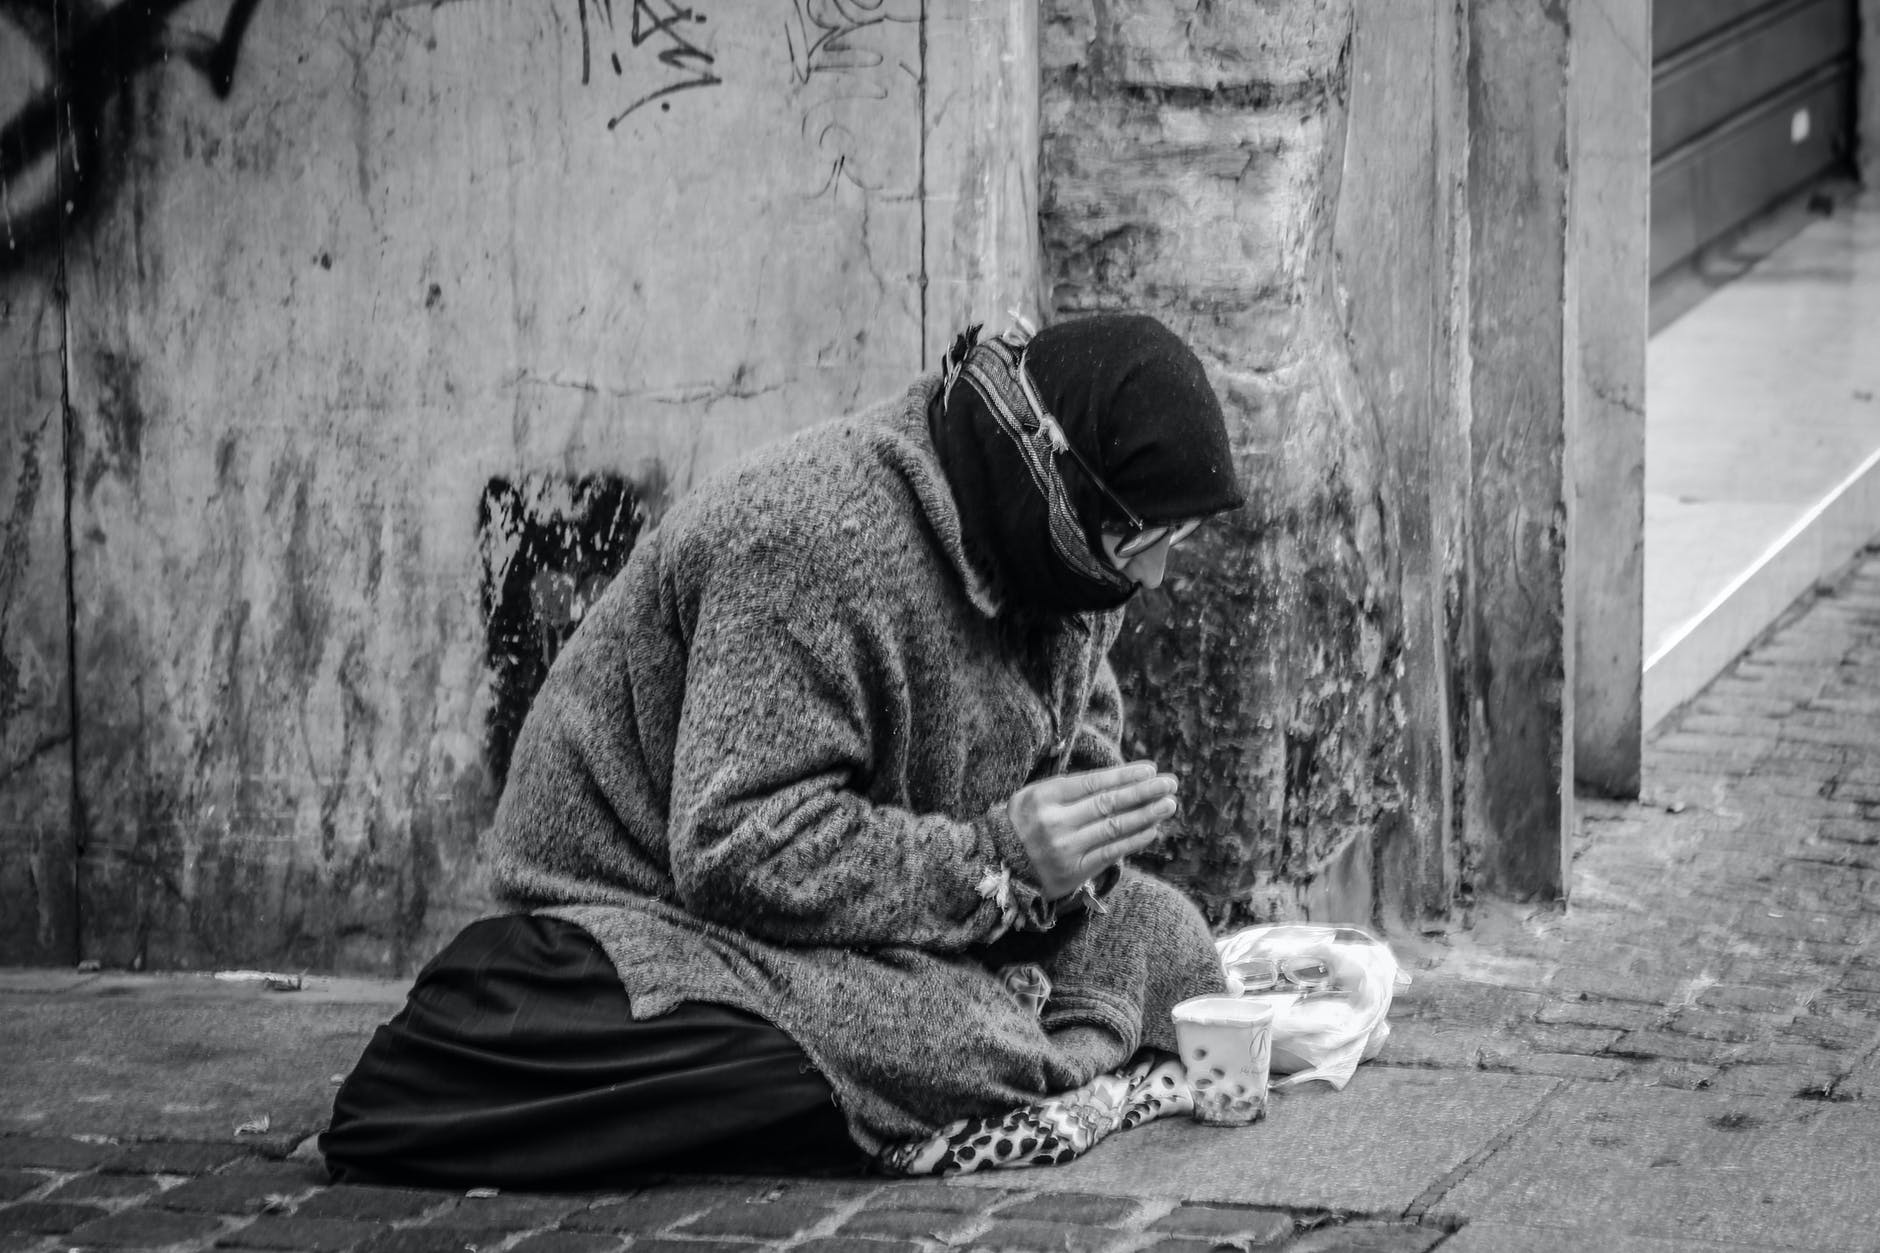 photo of a homeless person